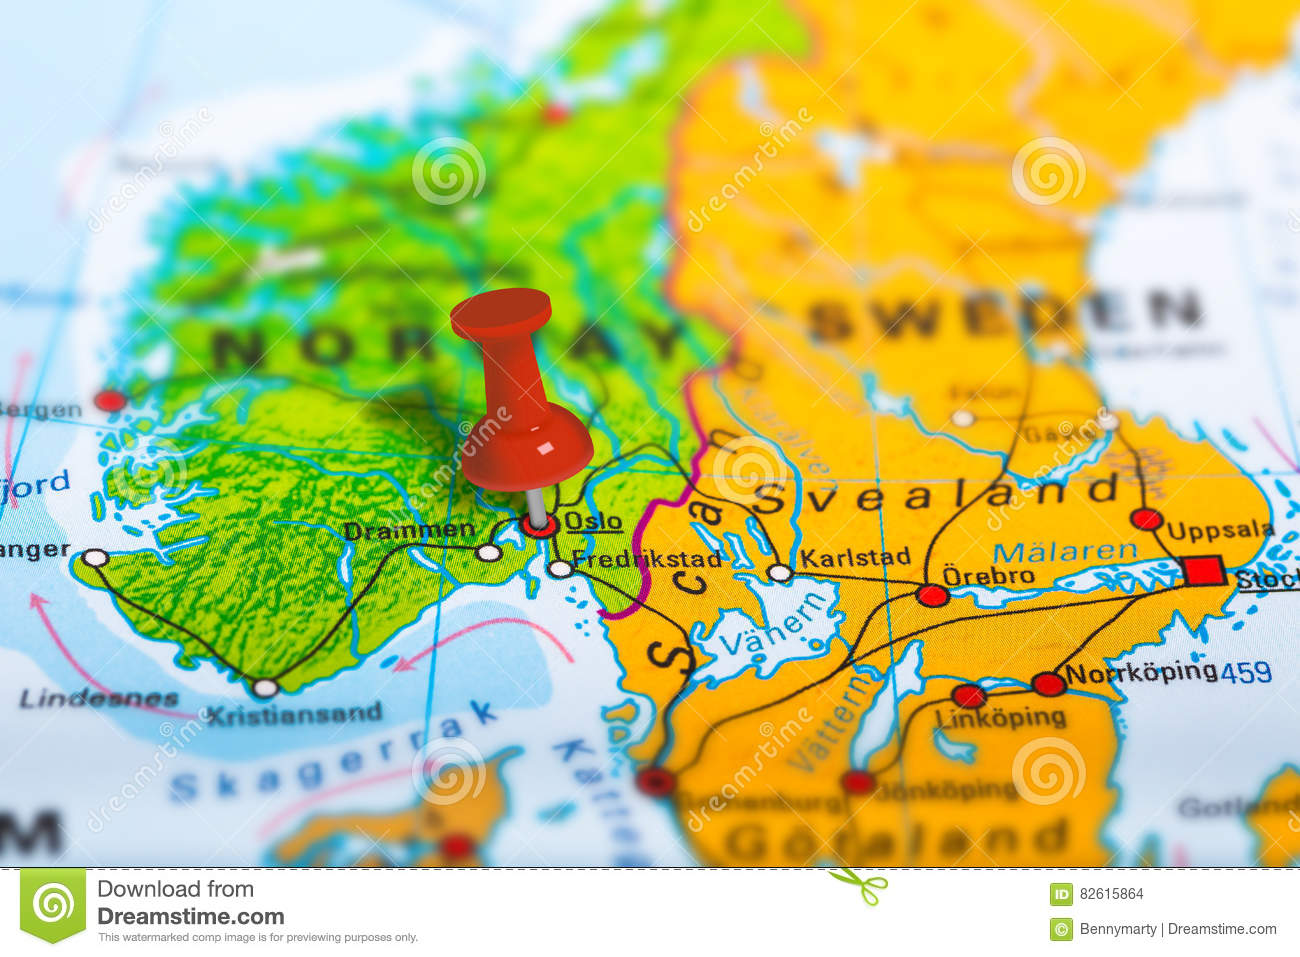 Oslo Norway map stock photo Image of concept geography 82615864